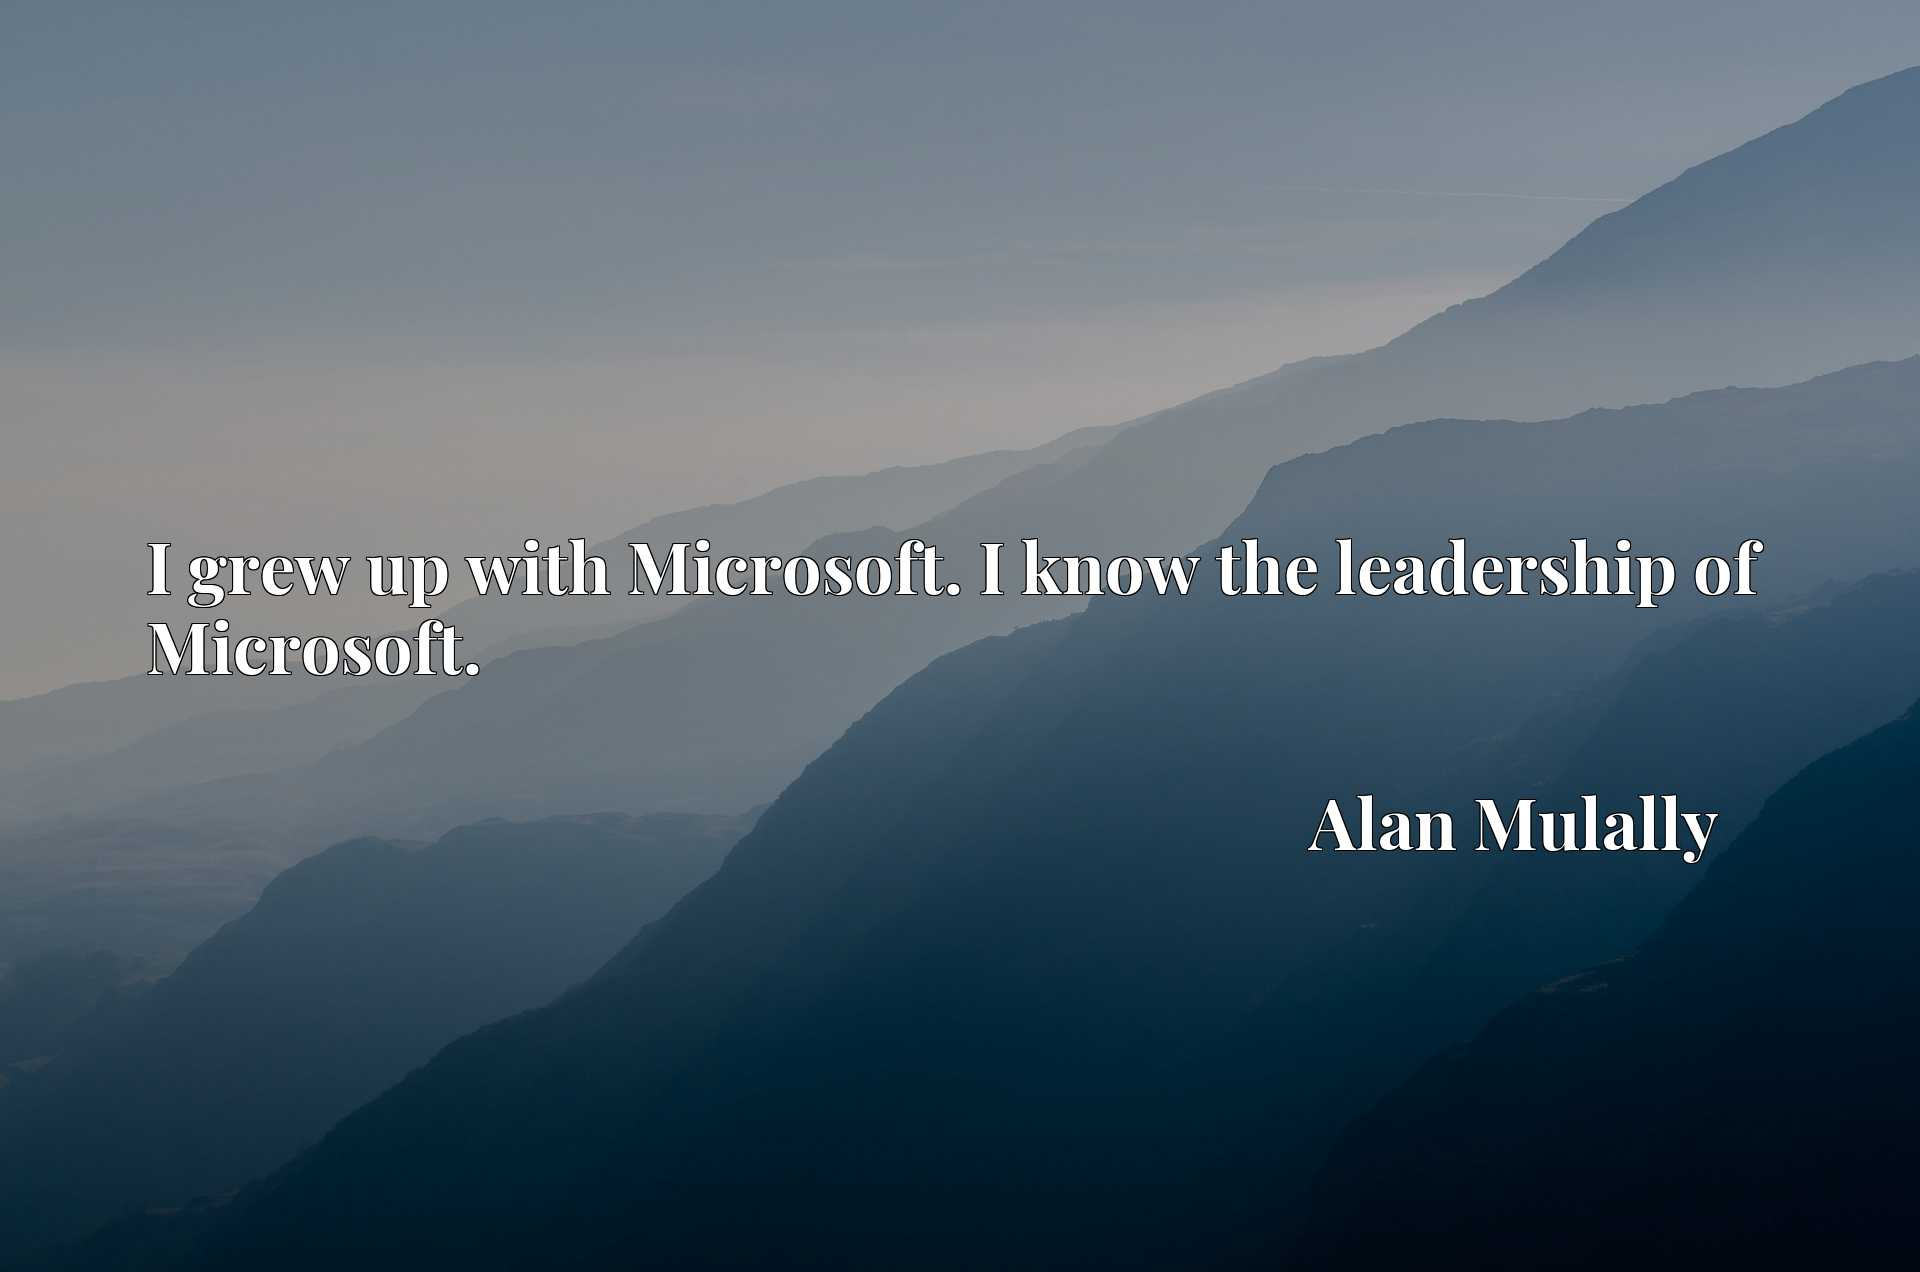 I grew up with Microsoft. I know the leadership of Microsoft.